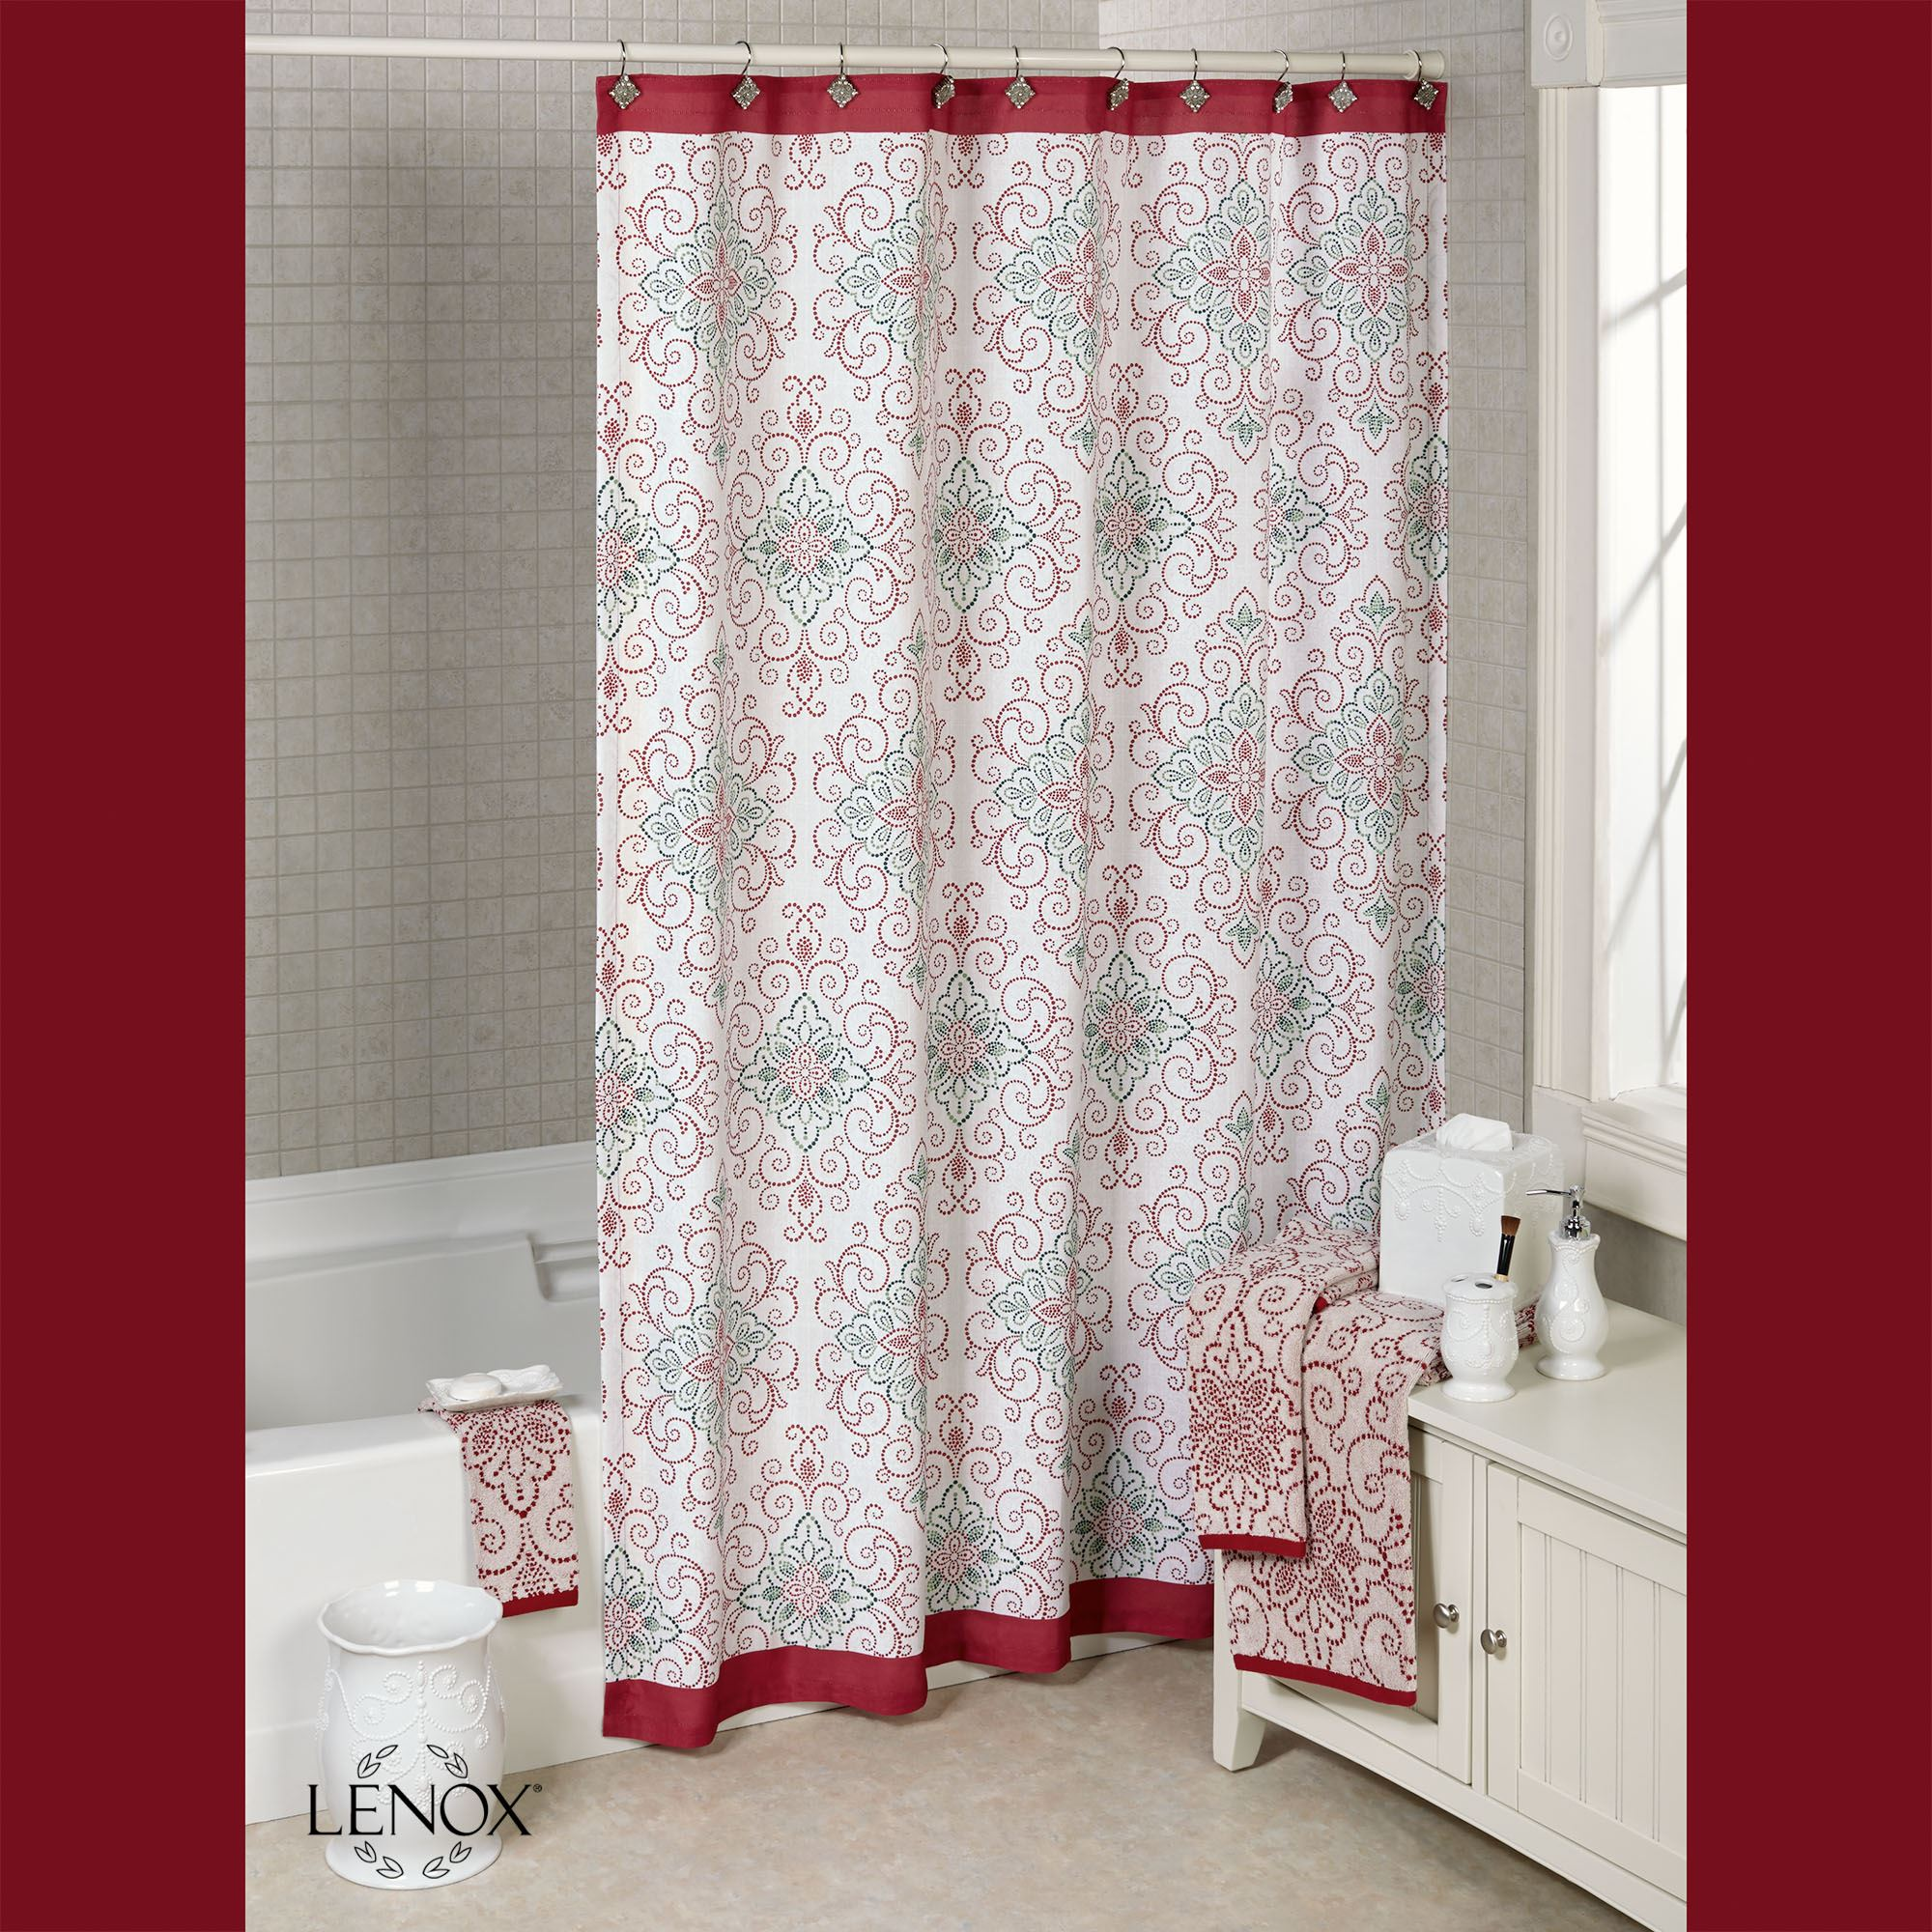 Lenox French Perle Groove Christmas Shower Curtain